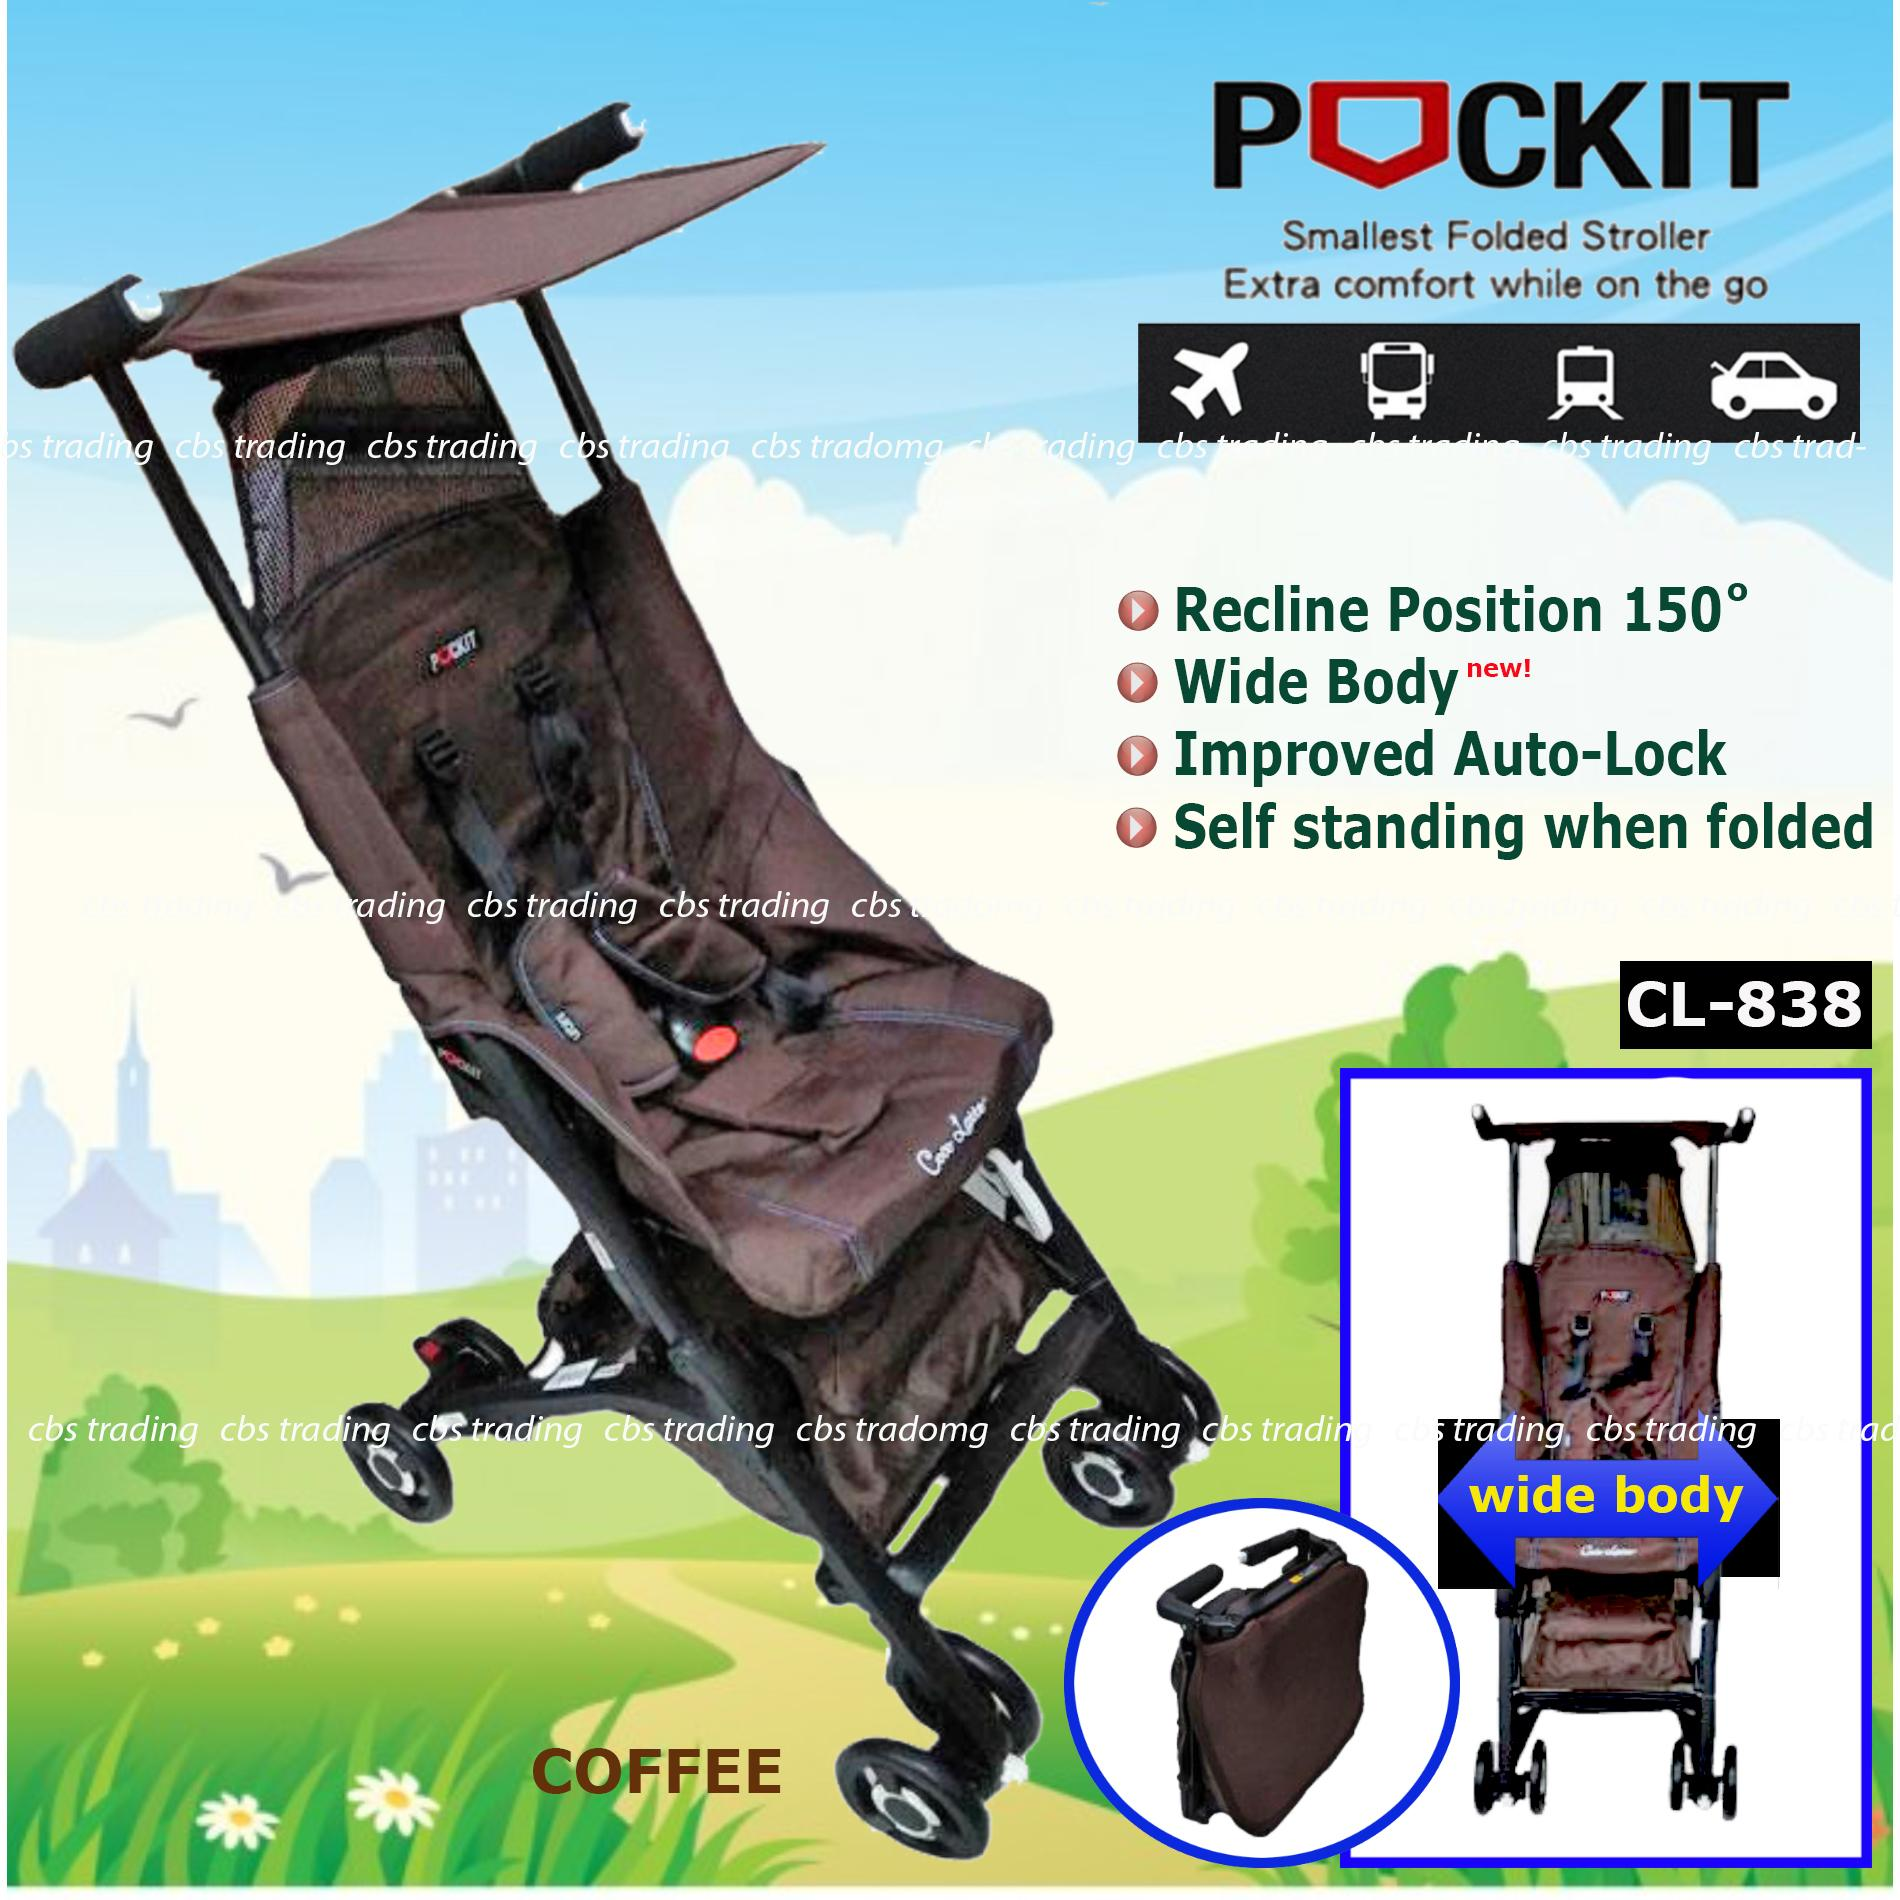 Cocolatte  Stroller CL-838 New Reclining Pockit - Kereta Dorong Bayi - Coffee